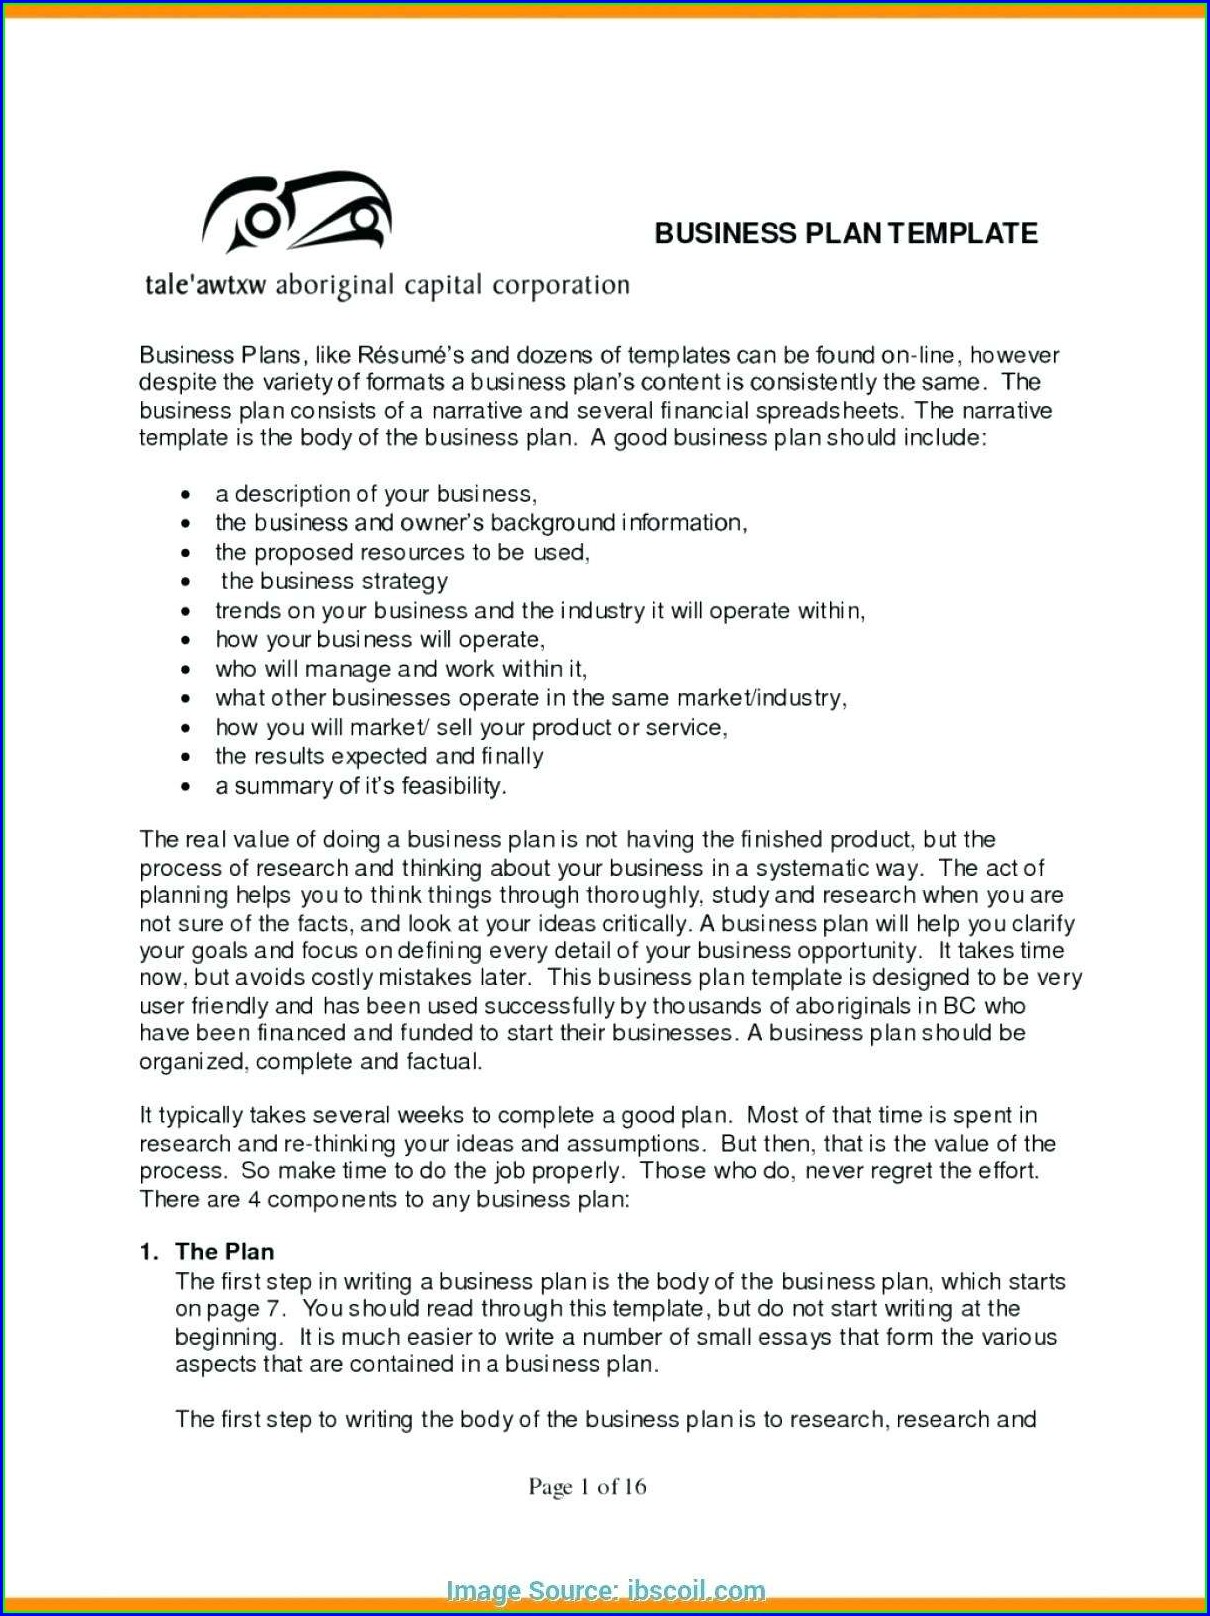 Sba Business Plan Template Pdf